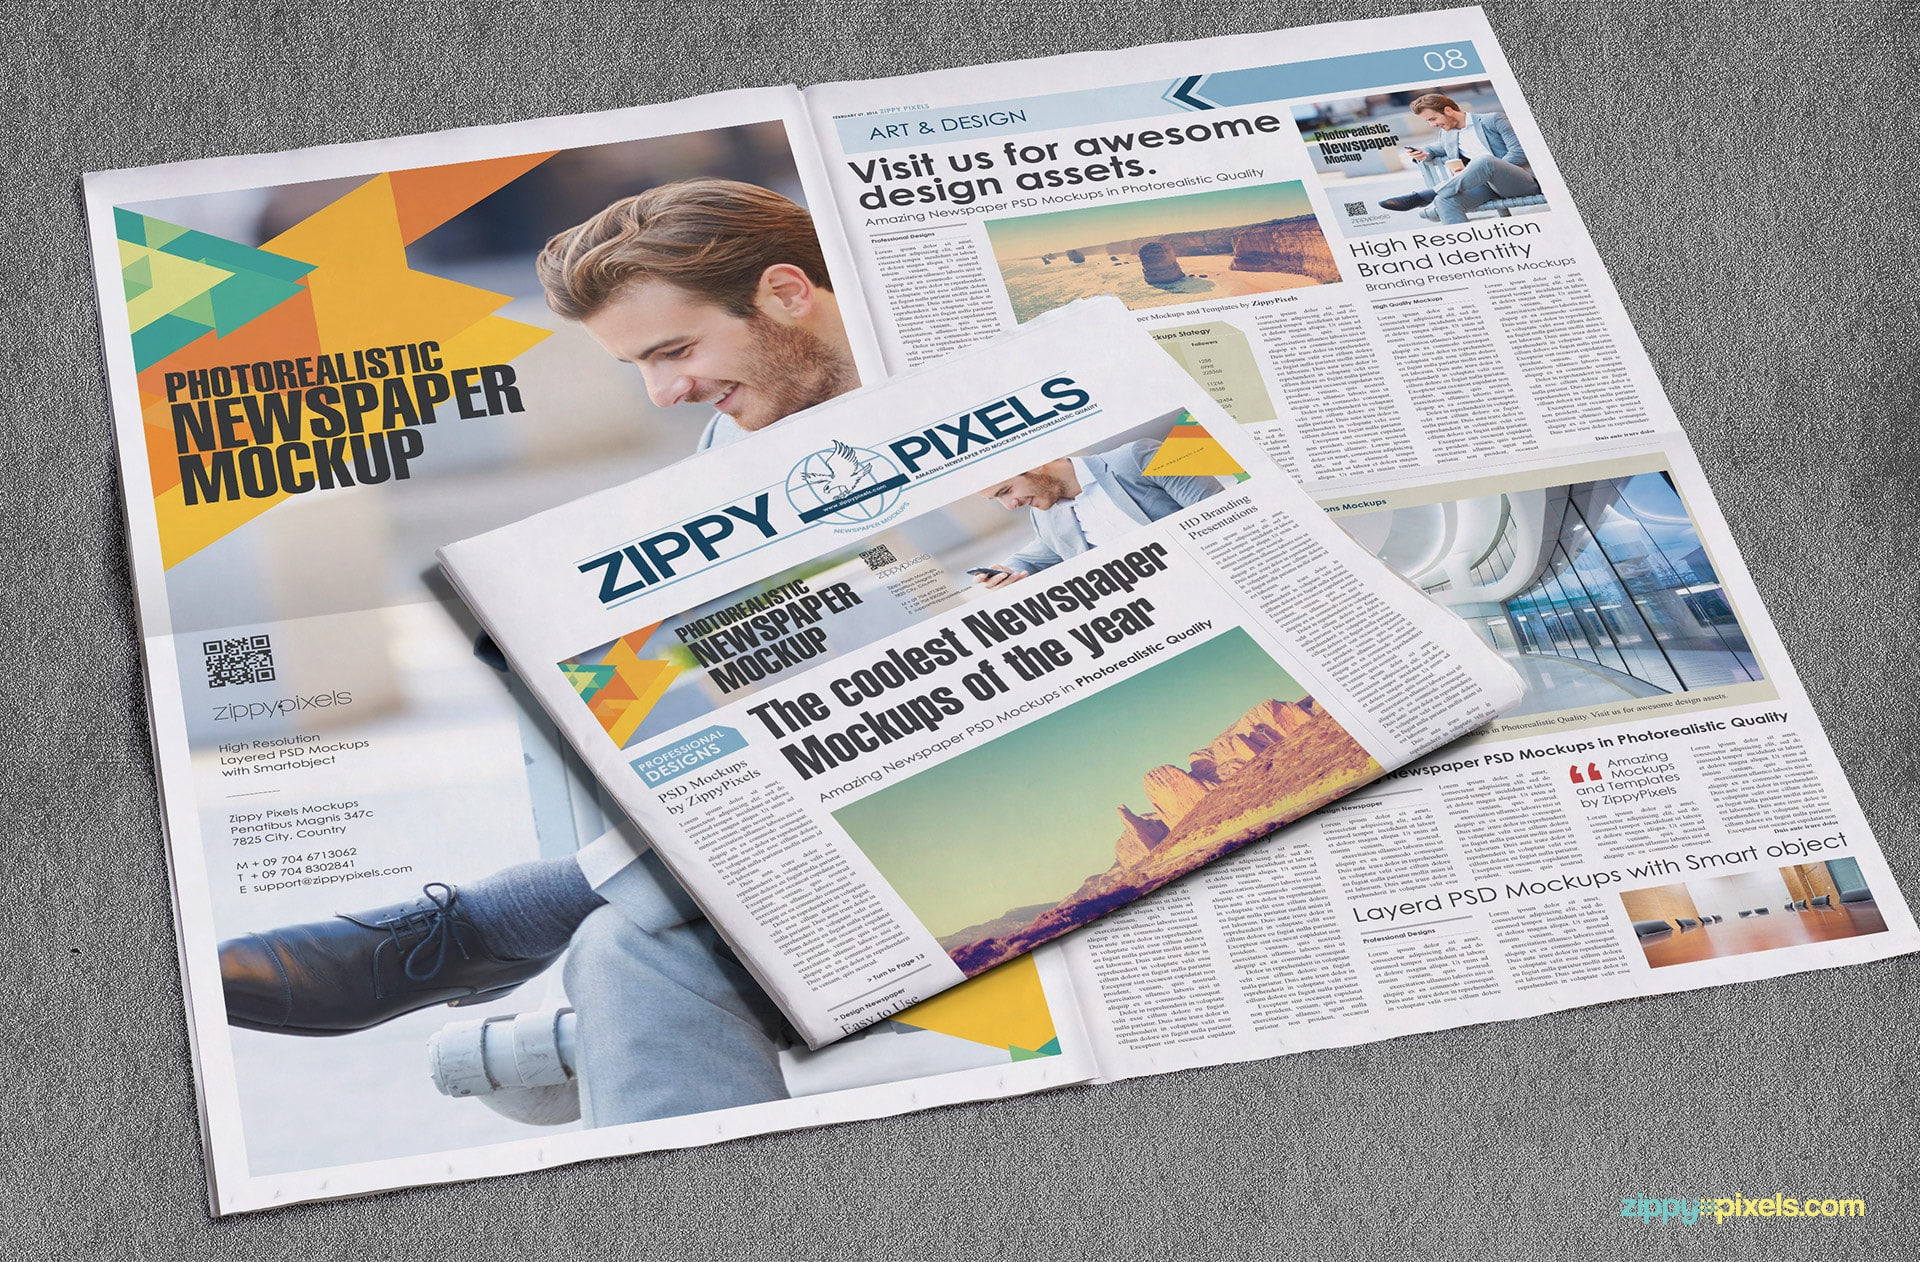 Newspaper mockup showing a full spread broadsheet newspaper & half-fold newspaper with full page & banner ads